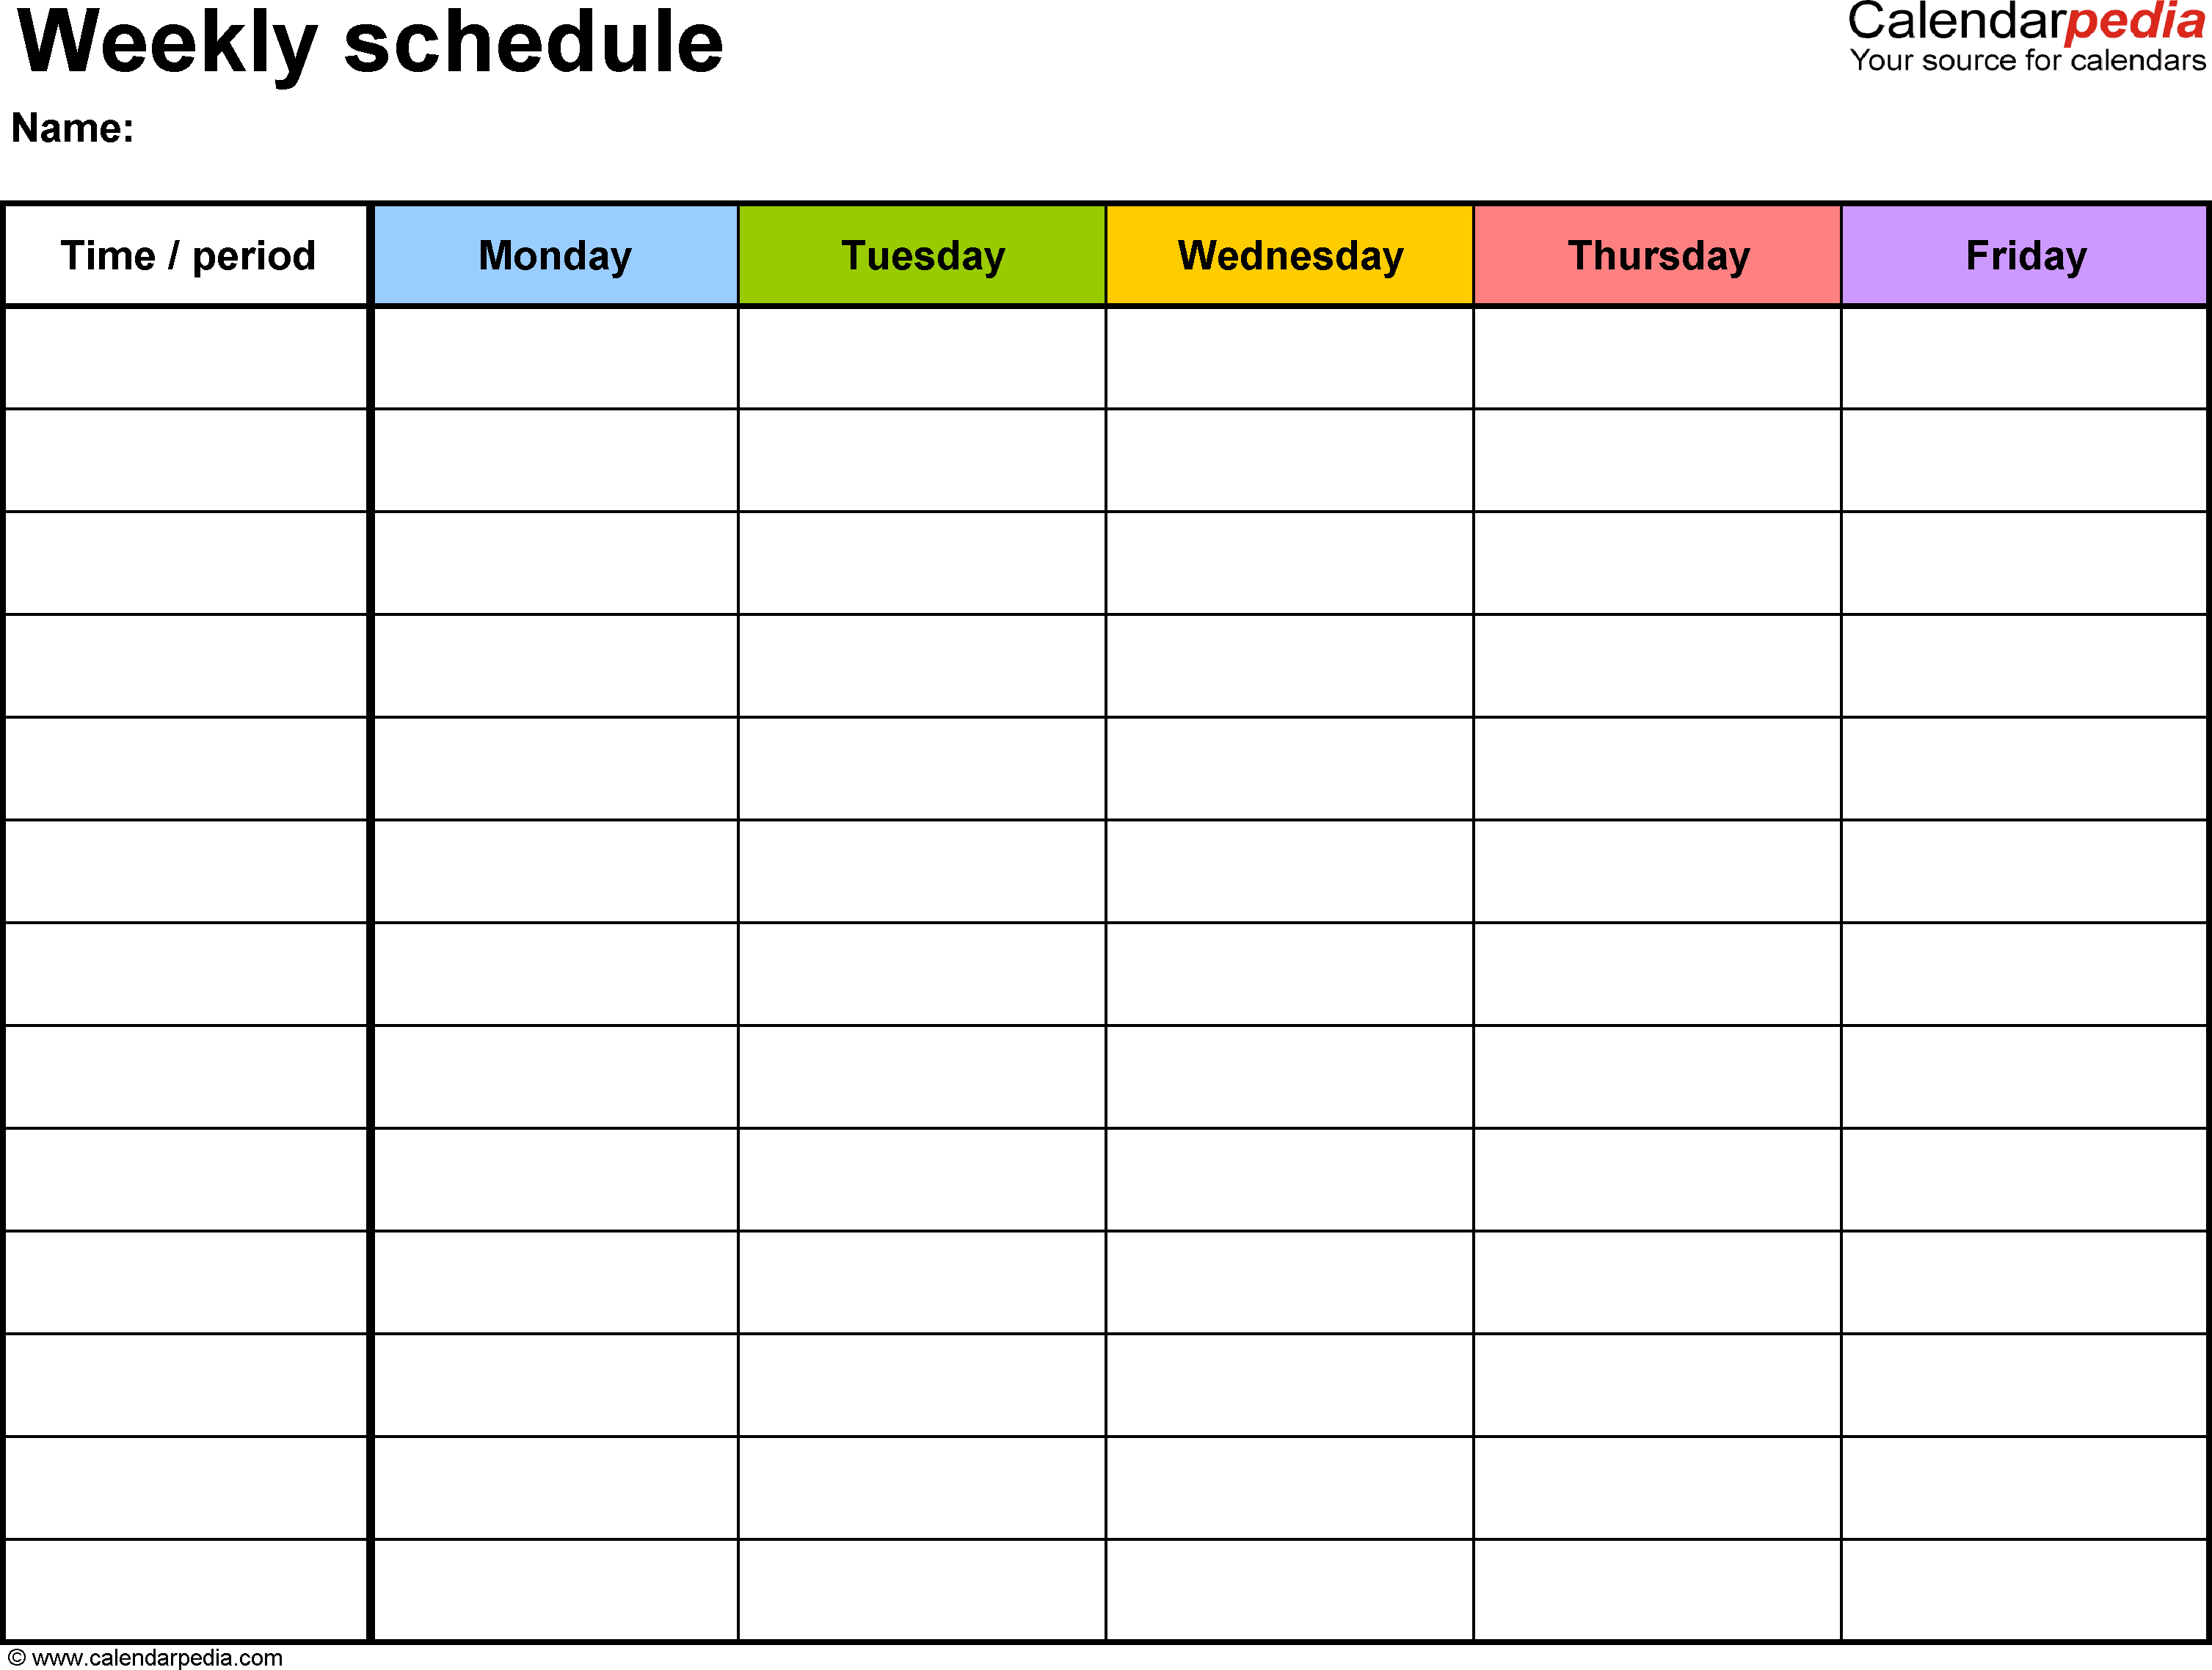 Free Weekly Schedule Templates For Excel - 18 Templates for Daily Planner Printable Calendar Templates